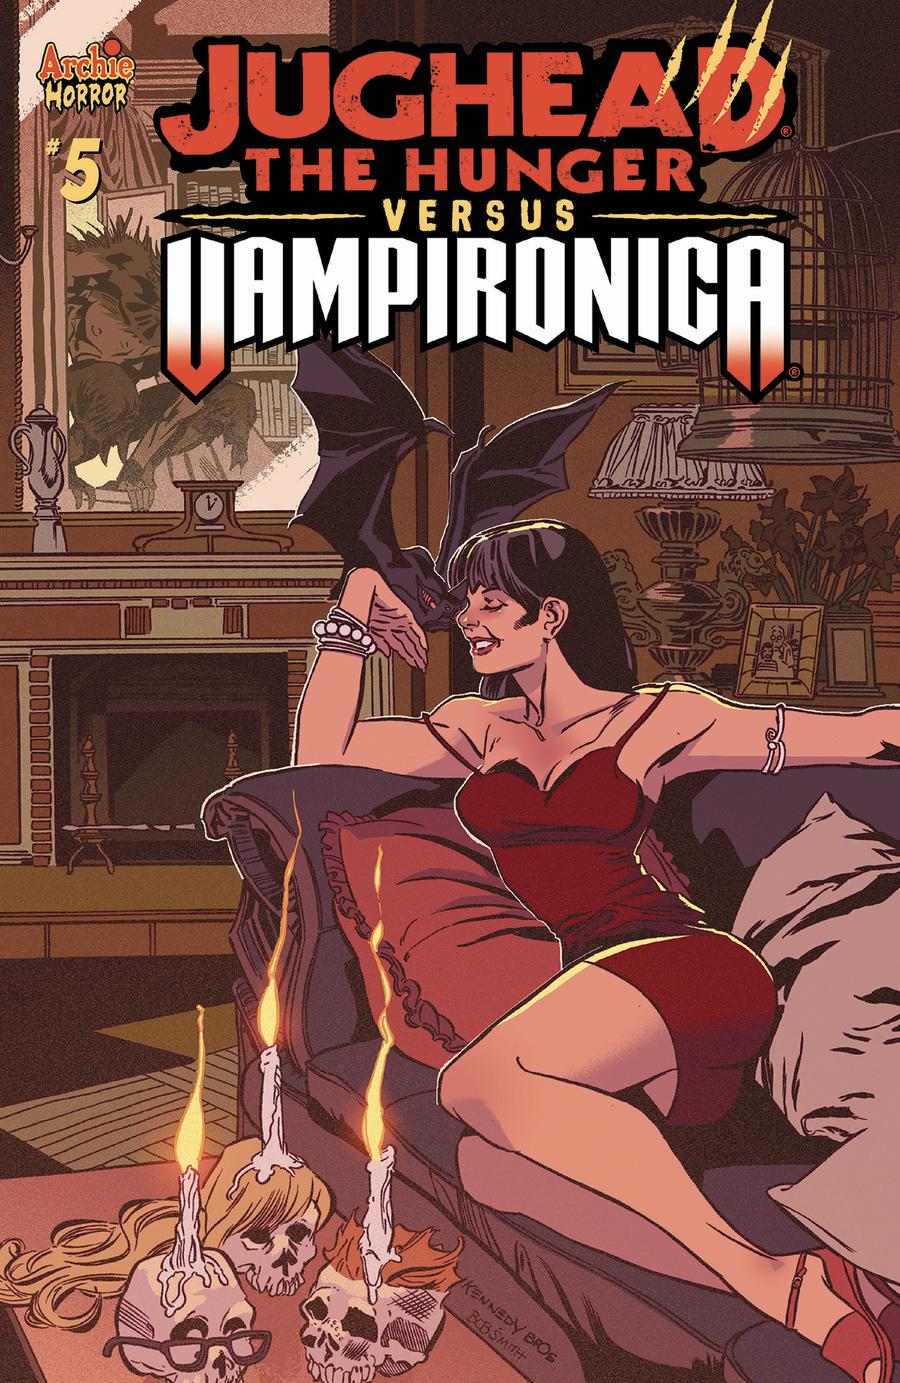 Jughead The Hunger Versus Vampironica #5 Cover A Regular Pat Kennedy & Tim Kennedy Cover